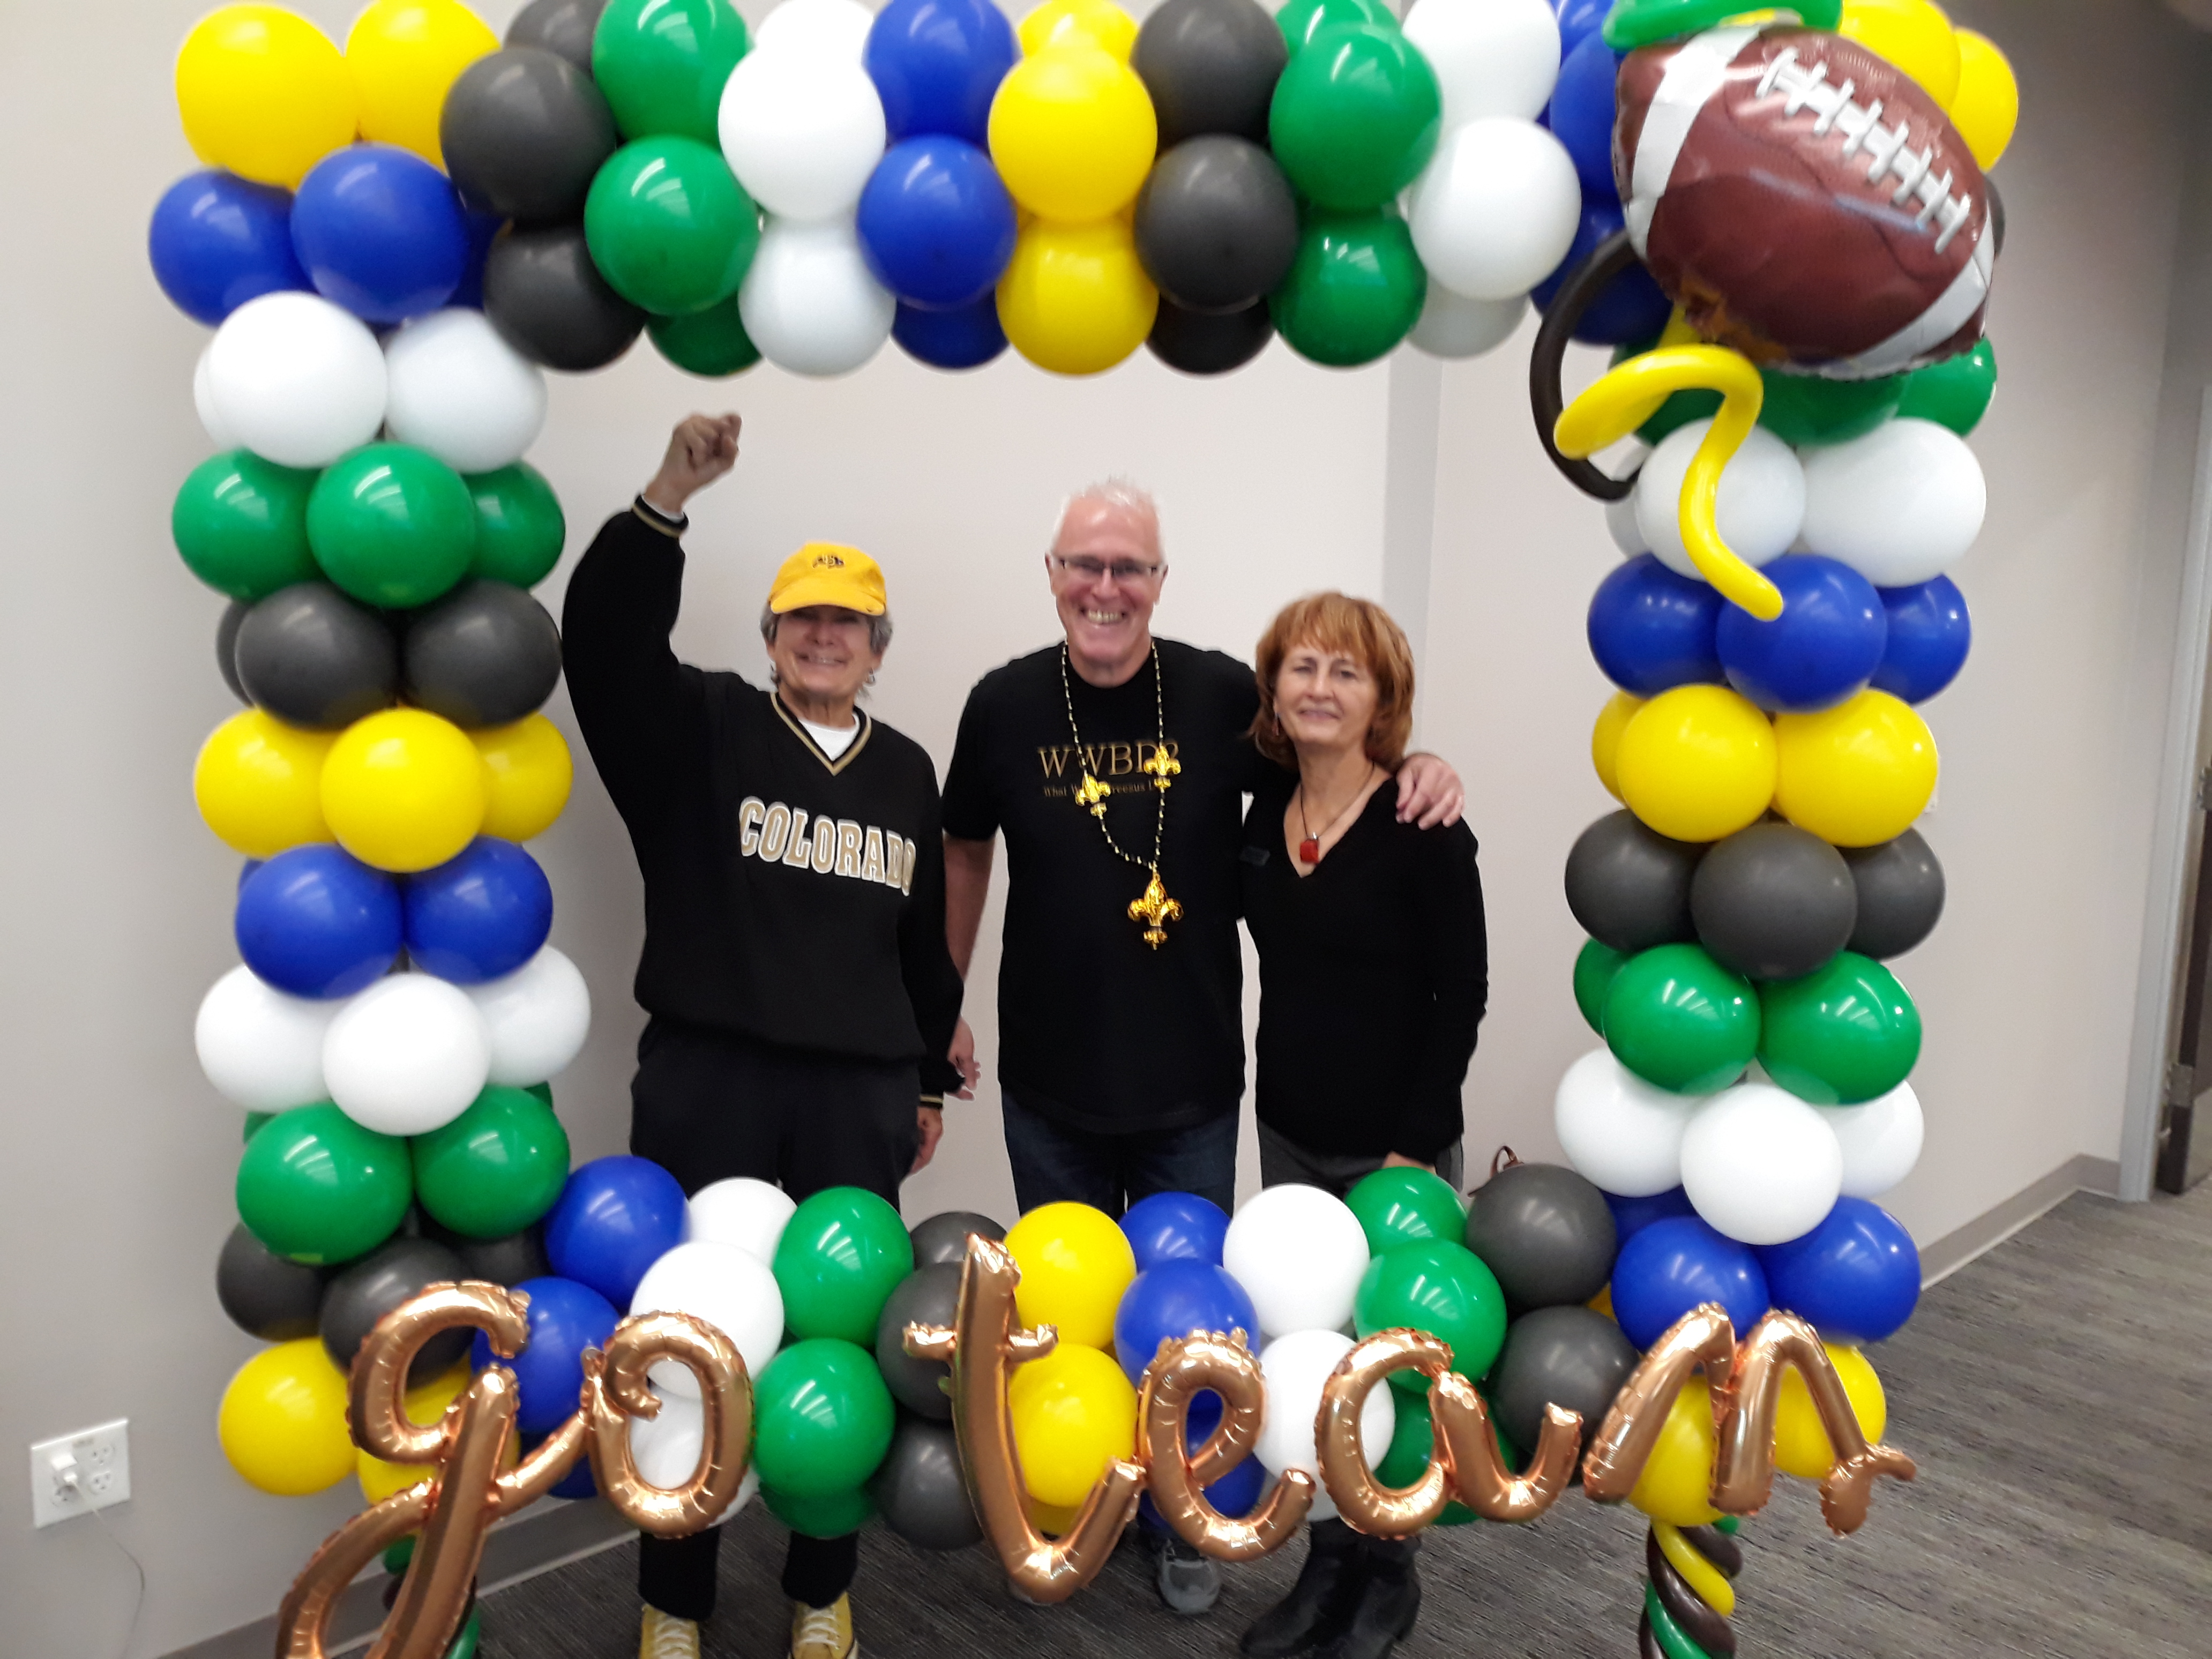 Commissioner Cook wore her University of Colorado sweatshirt and appears to be rooting for her team at the photo booth with her staff Garry Brown and Doris Sanchez.